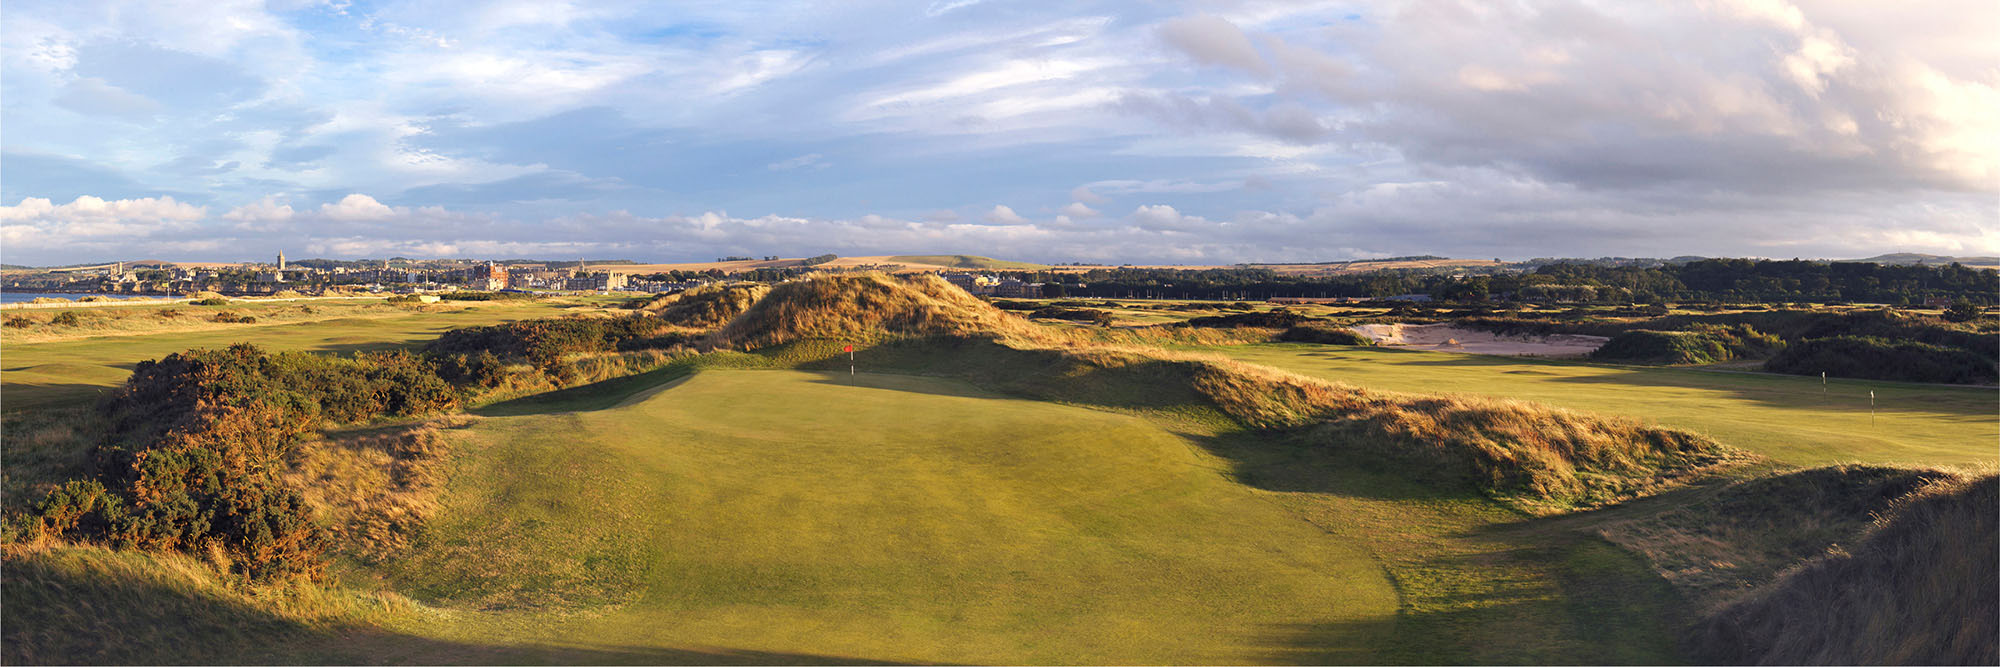 Golf Course Image - St Andrews Jubilee No. 15